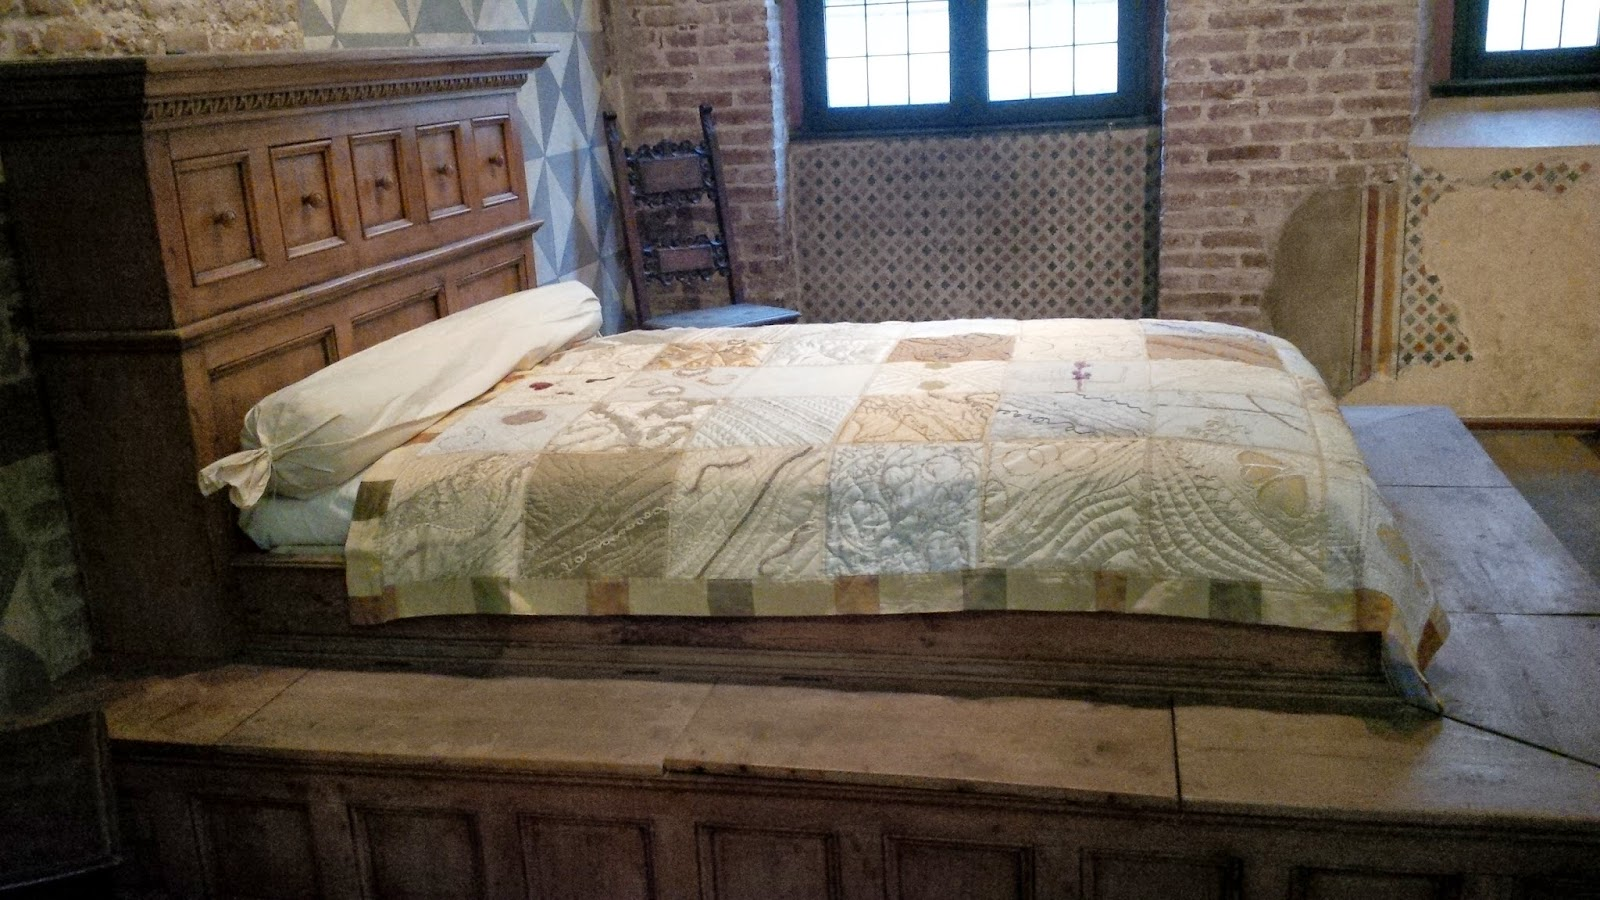 The bed used in Franco Zeffirelli's film 'Romeo and Juliet' in 1968